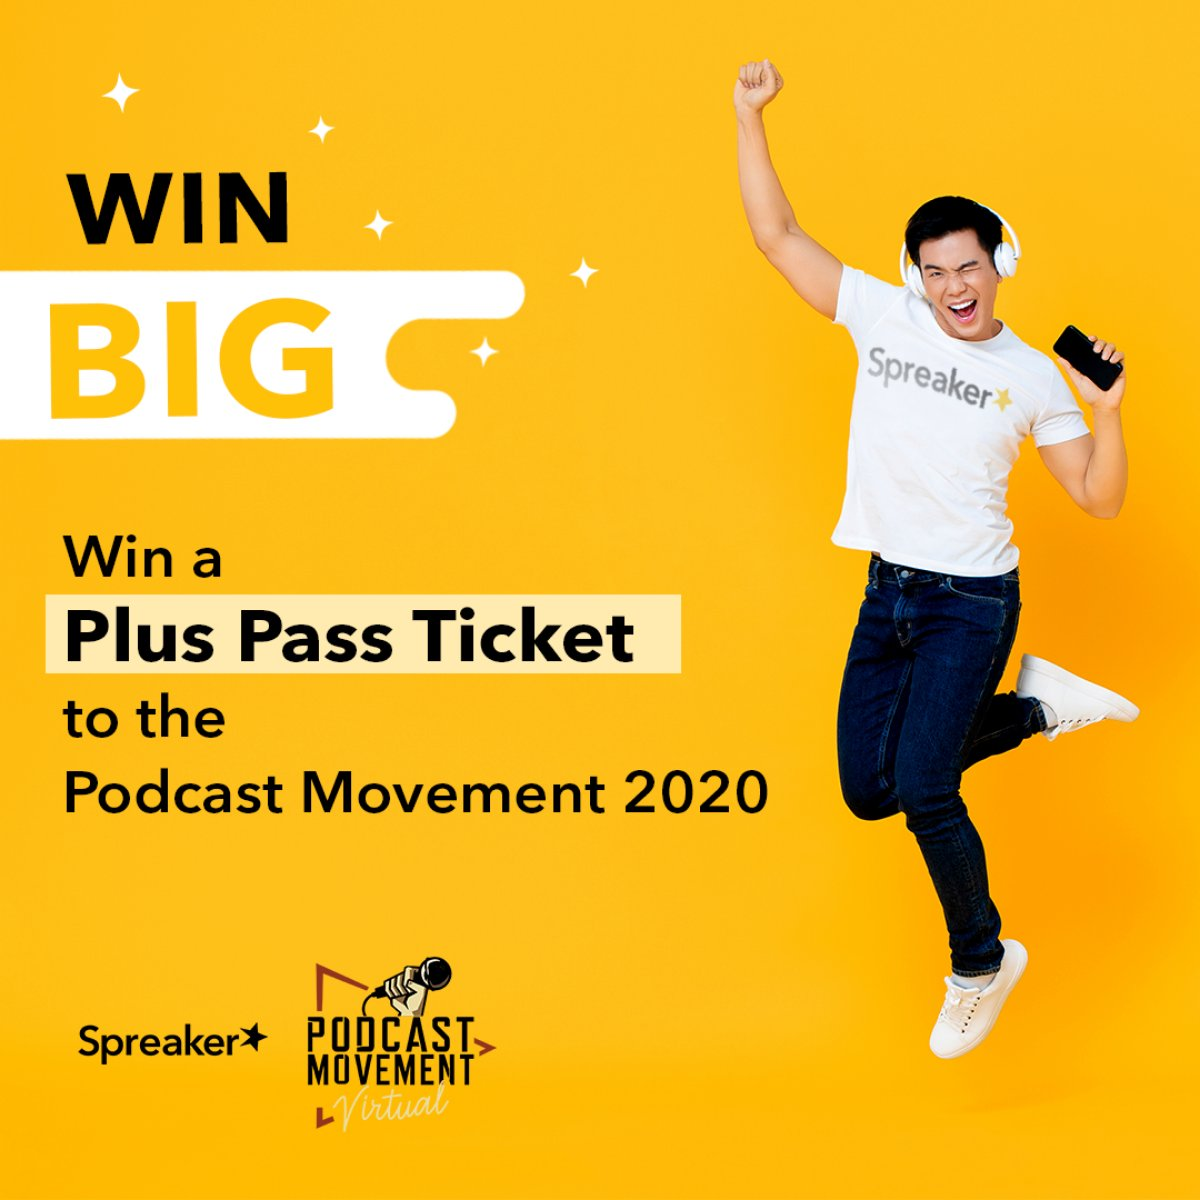 Spreaker takes you to the @PodcastMovement! We're giving away ☝One Plus Pass ticket to Podcast Movement Virtual 2020  How do you enter? ✅ Be sure to follow @spreaker on Instagram & tag a friend in the comments of this Instagram post 👉 https://t.co/ehpZhtN2BW https://t.co/9L3ZZ9rpUJ